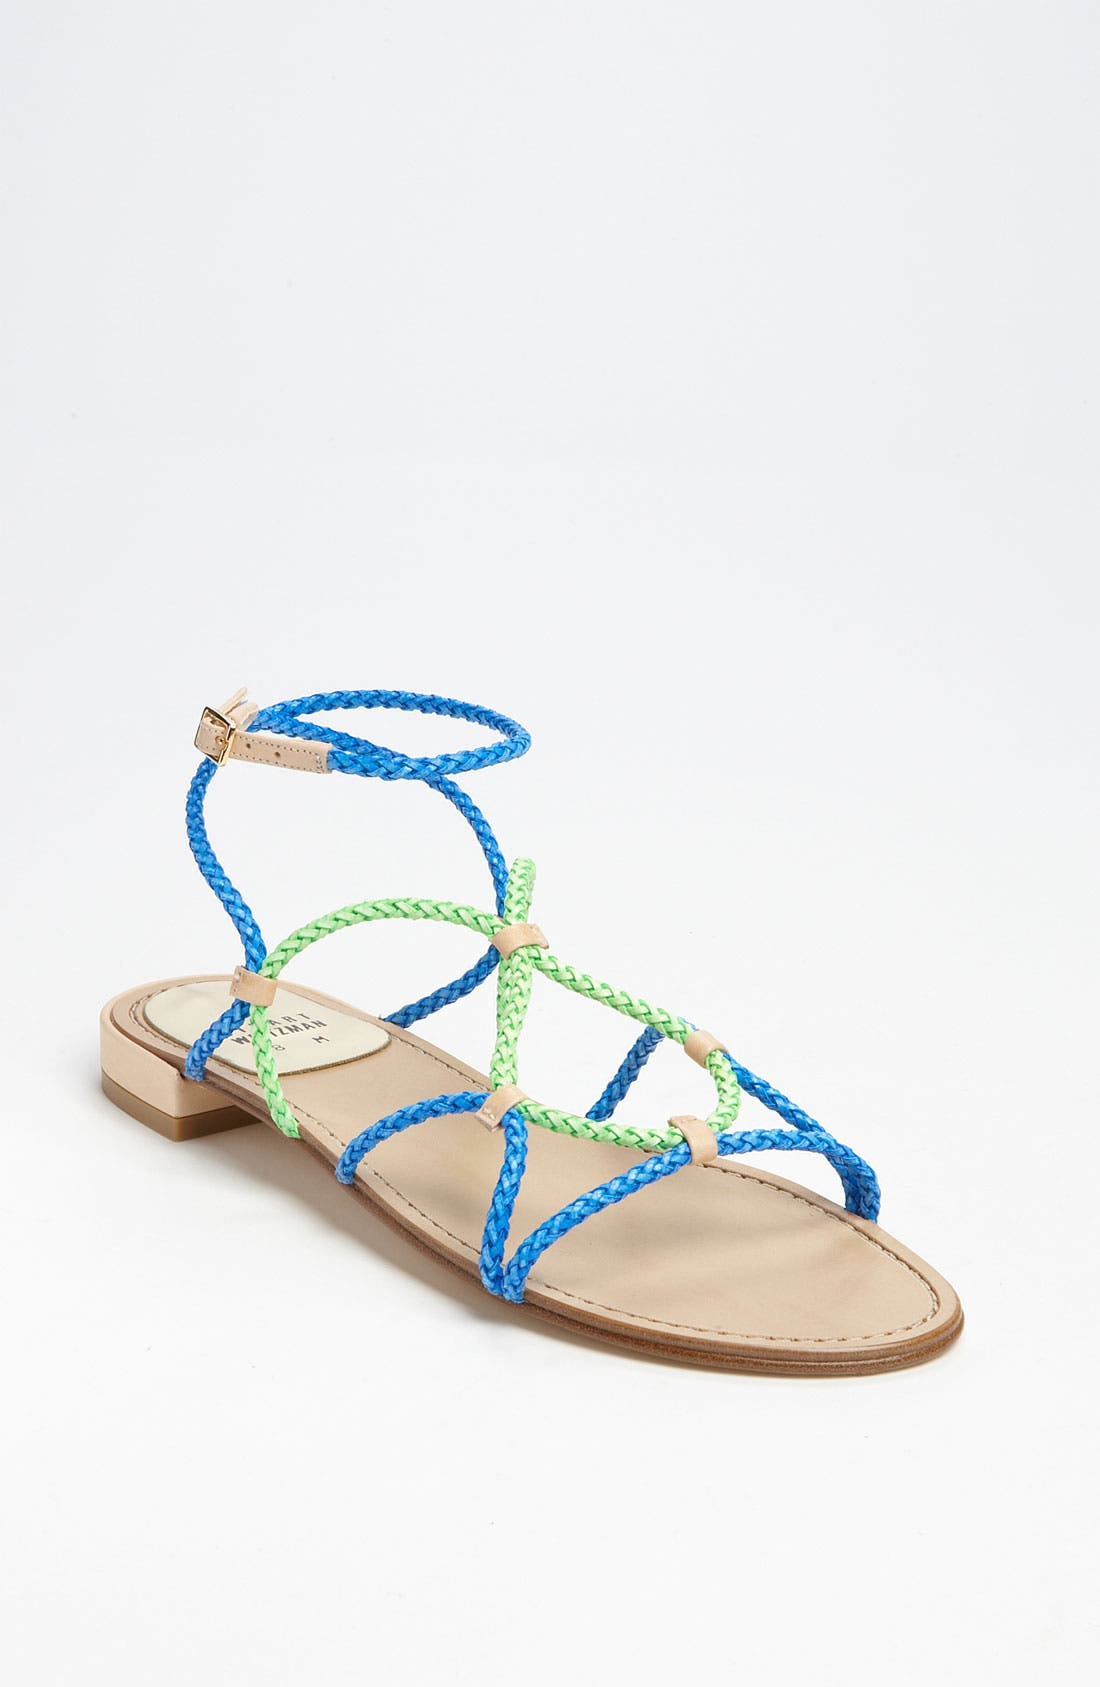 Alternate Image 1 Selected - Stuart Weitzman 'Cordy' Sandal